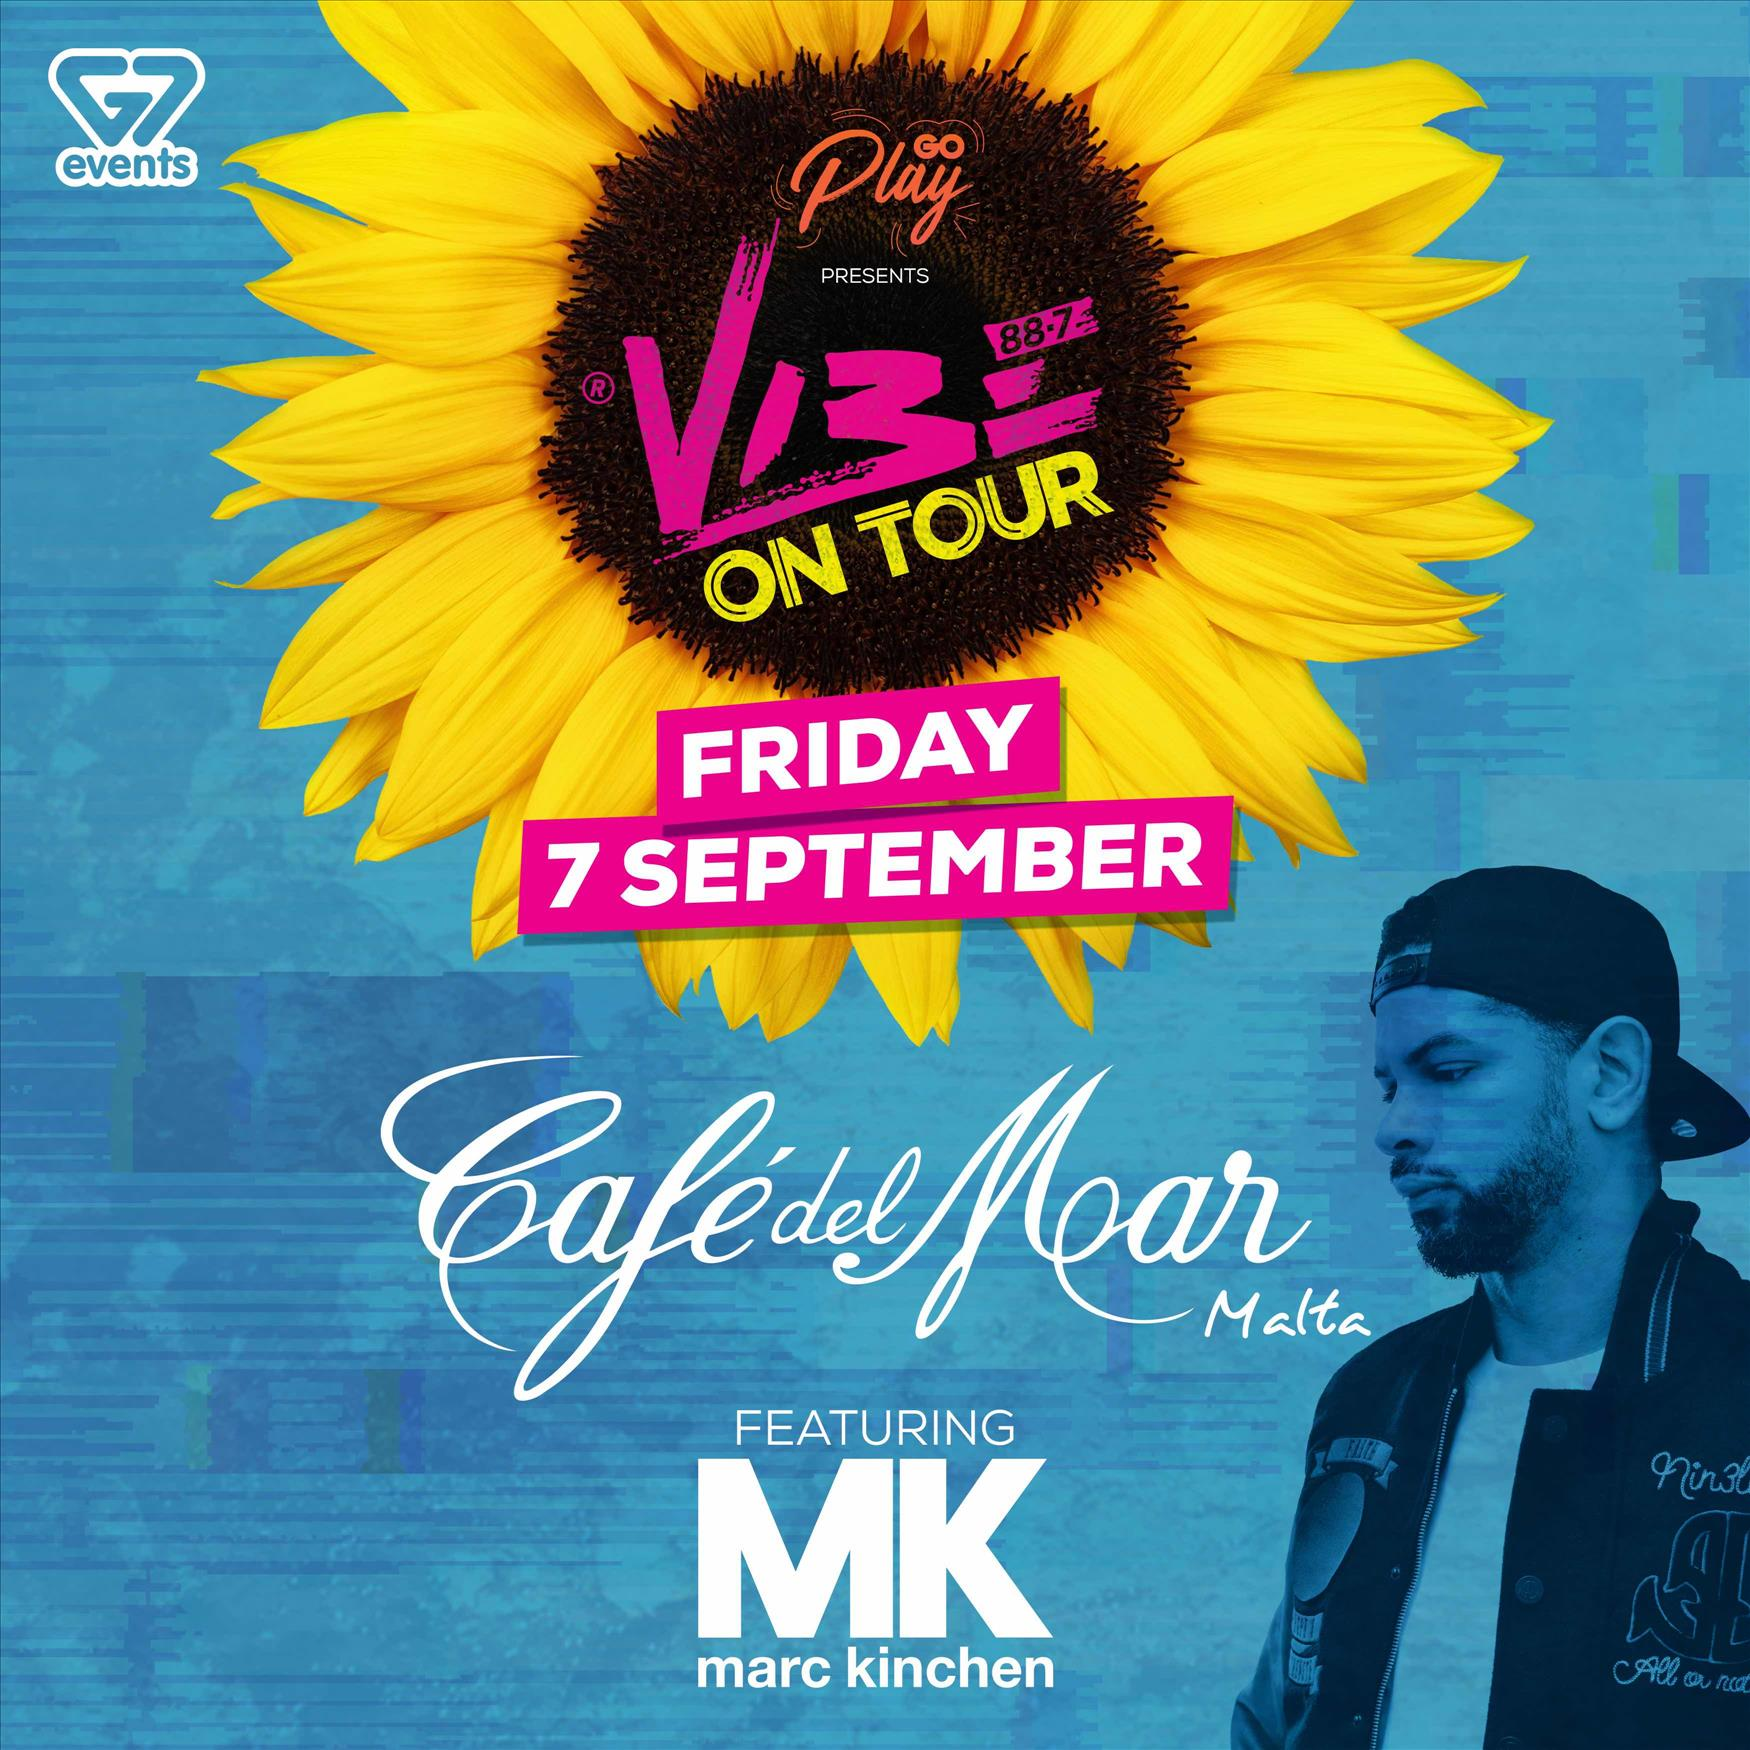 VIBE ON TOUR ft. MK flyer